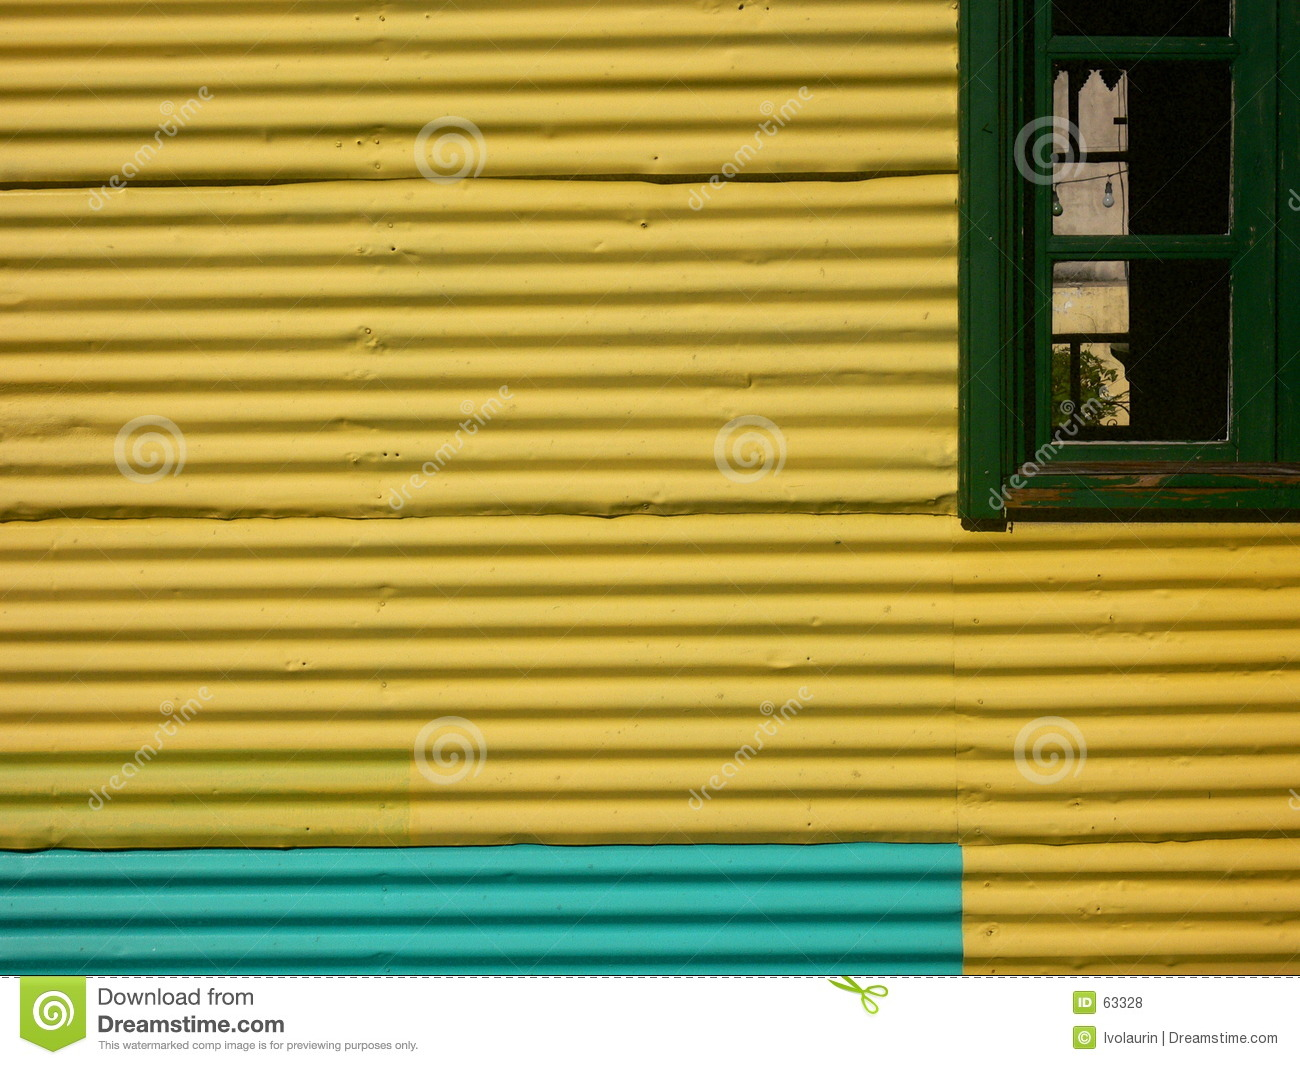 Download La Boca photo stock. Image du hublot, jaune, aires, vert - 63328